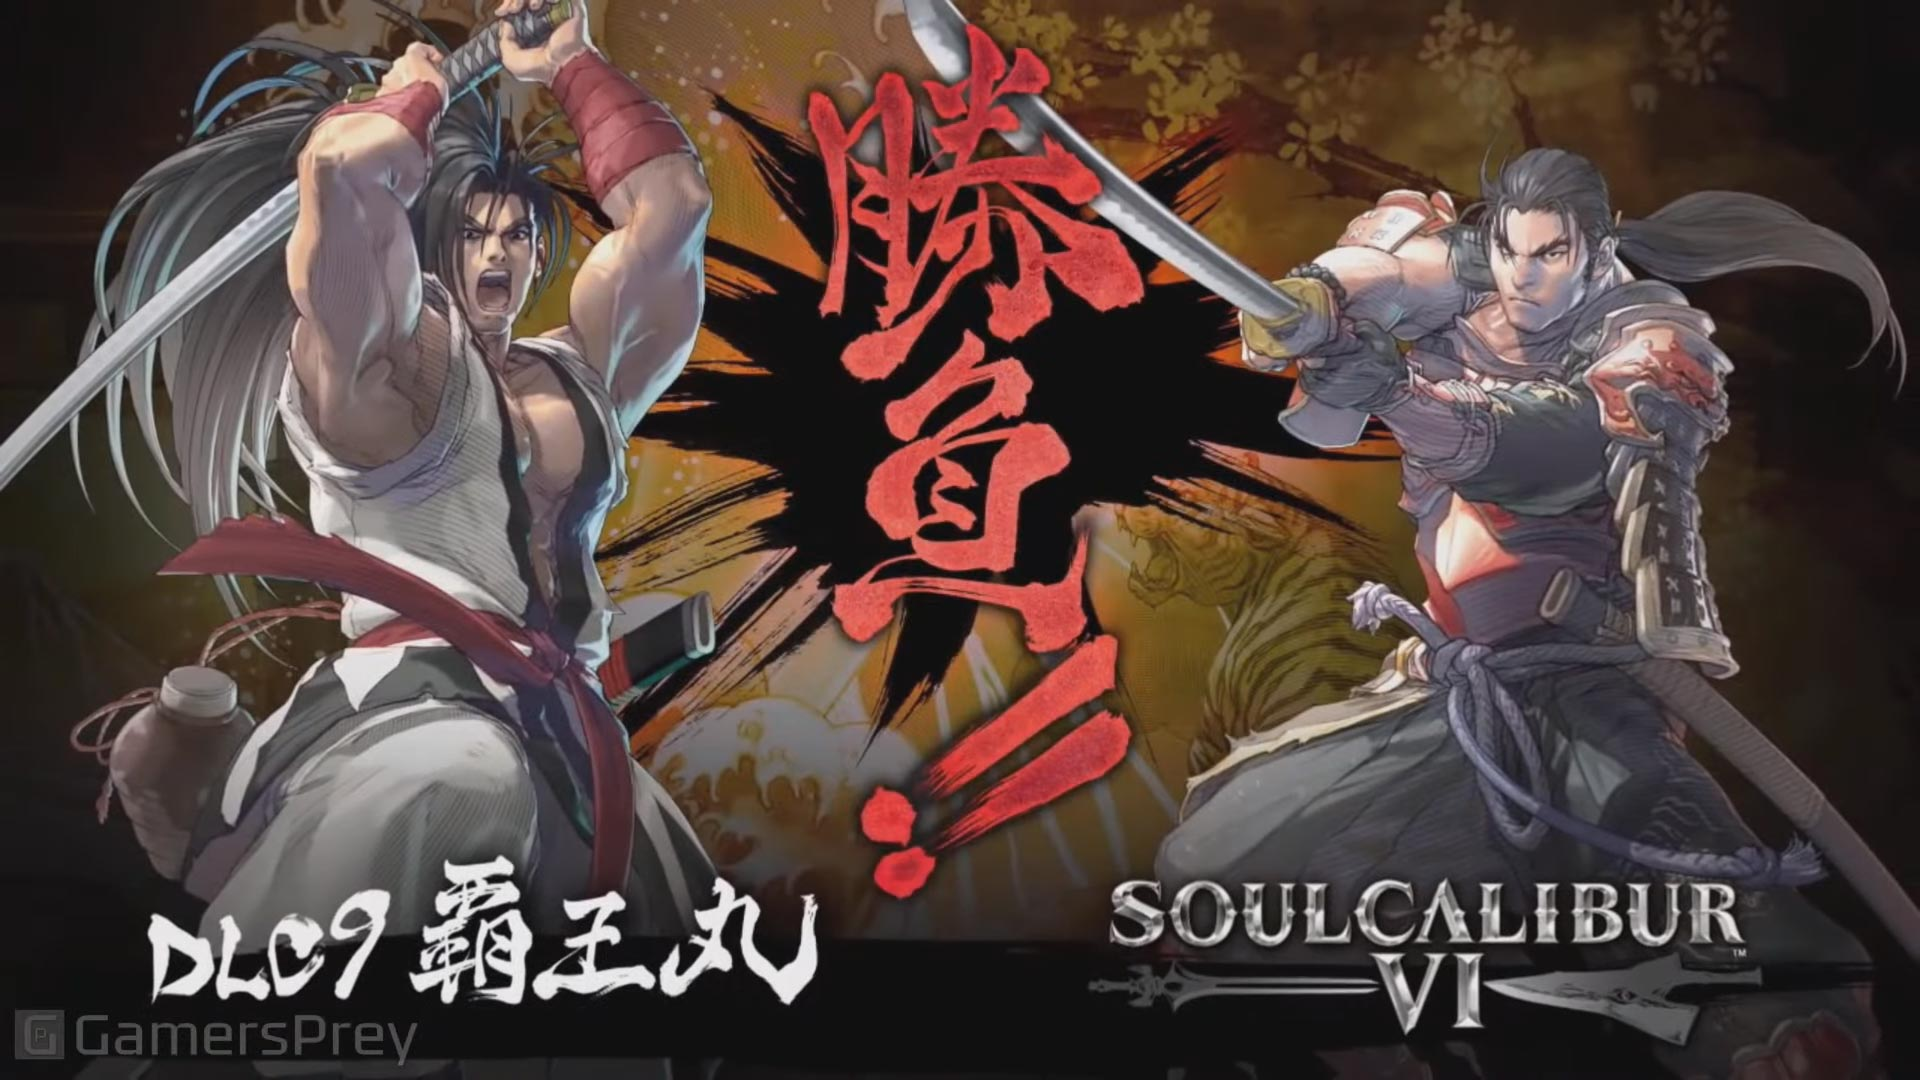 Soul Calibur 6 Haohmaru Trailer Screenshot Gallery 6 out of 6 image gallery